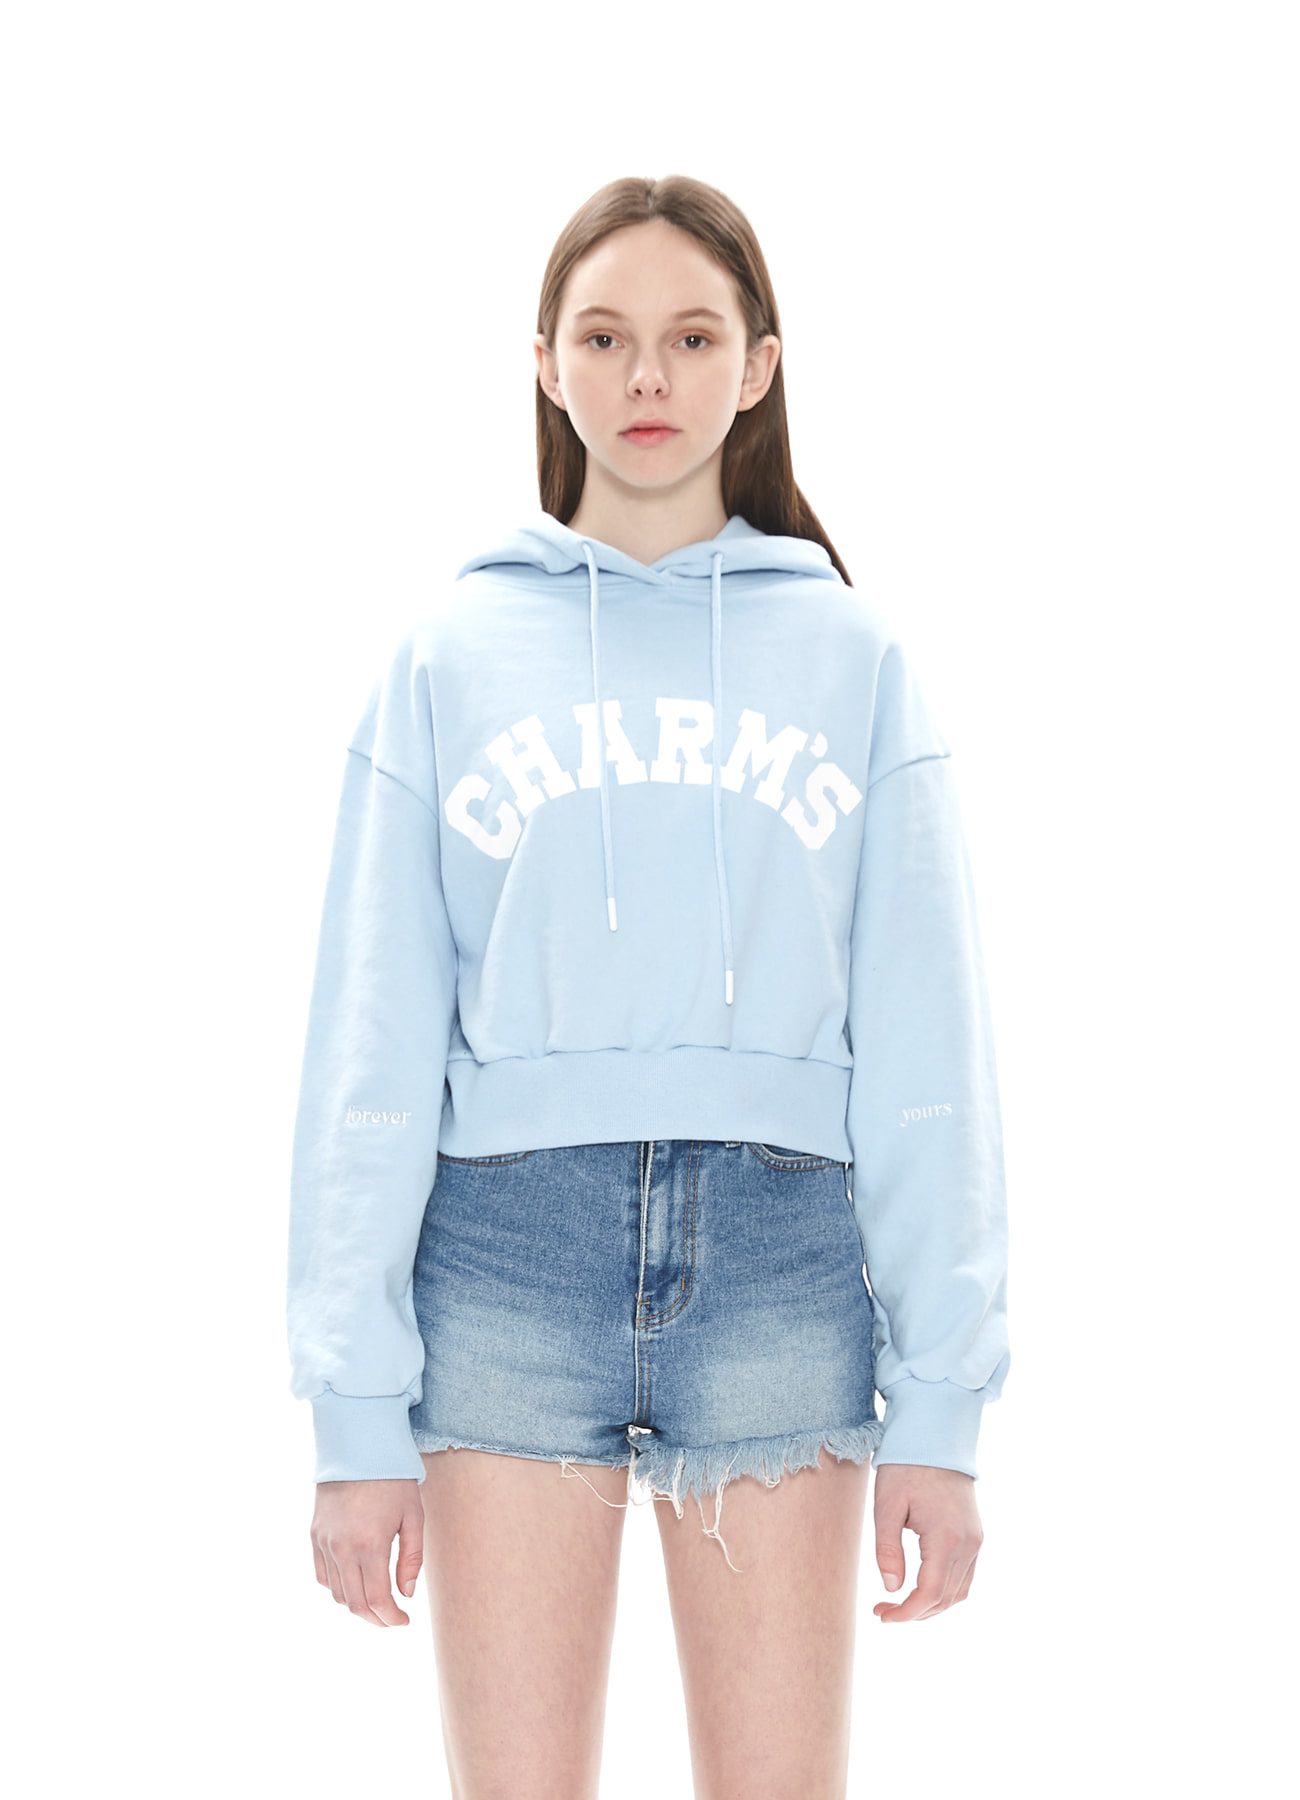 CHARMS FADED LOGO CROP HOODY_BL